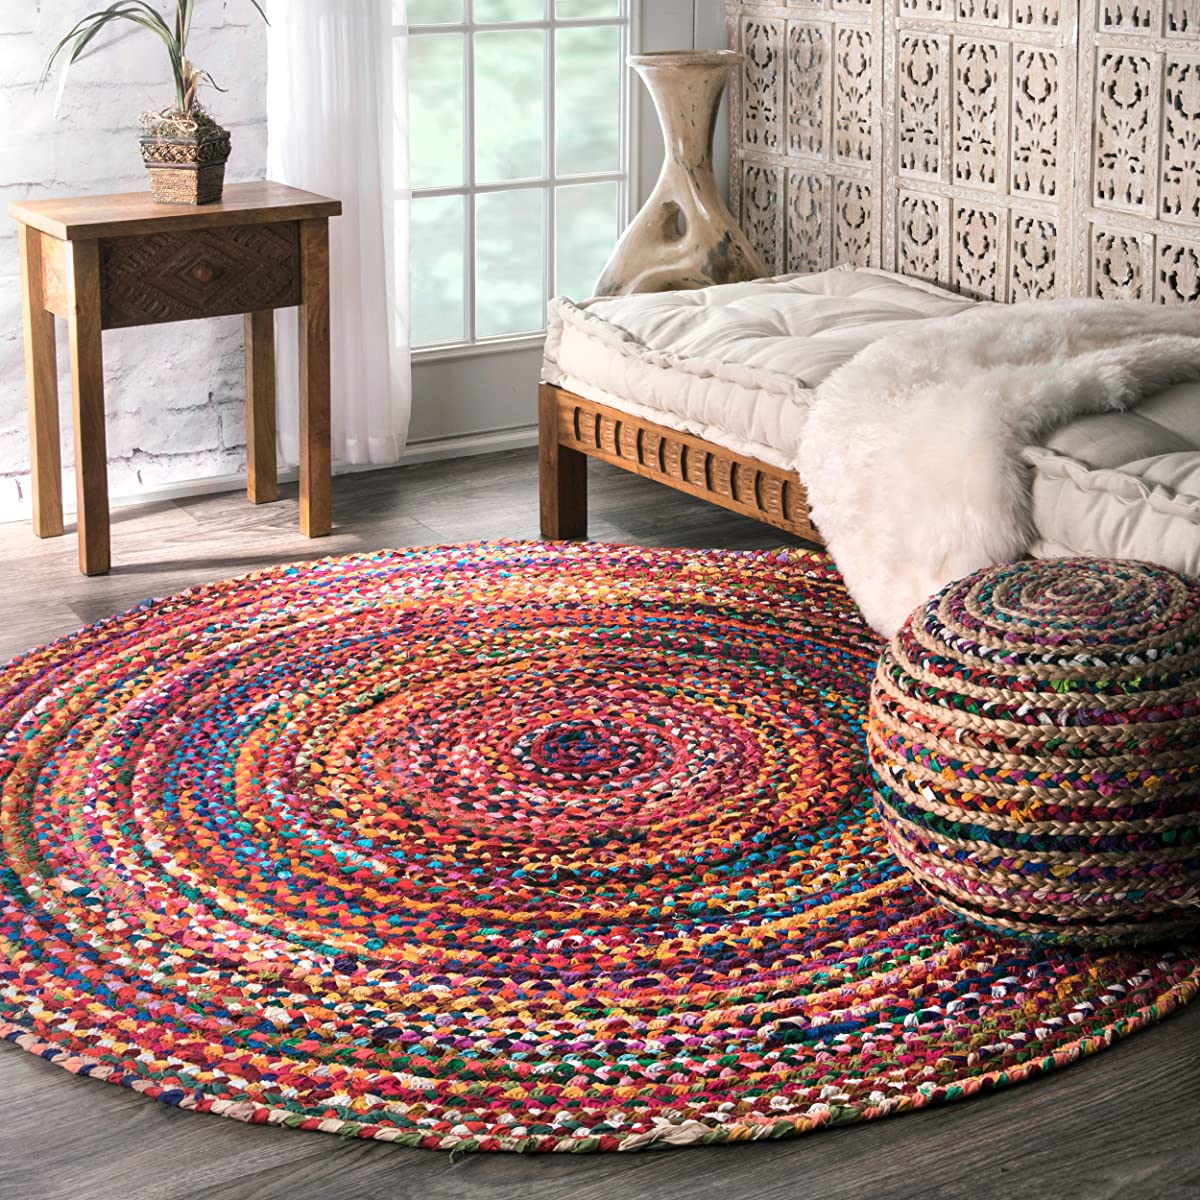 nuLOOM Casual Handmade Braided Cotton Round Area Rug, 6